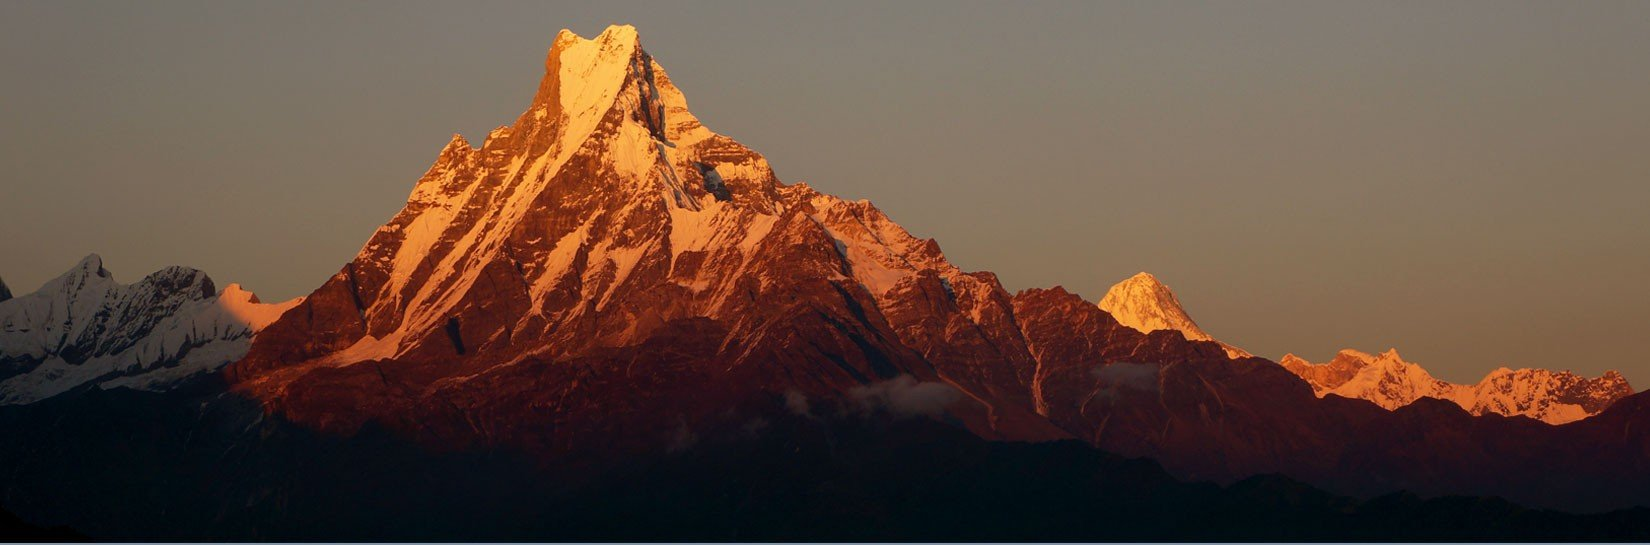 Mount Machhapuchhre (Fishtail)